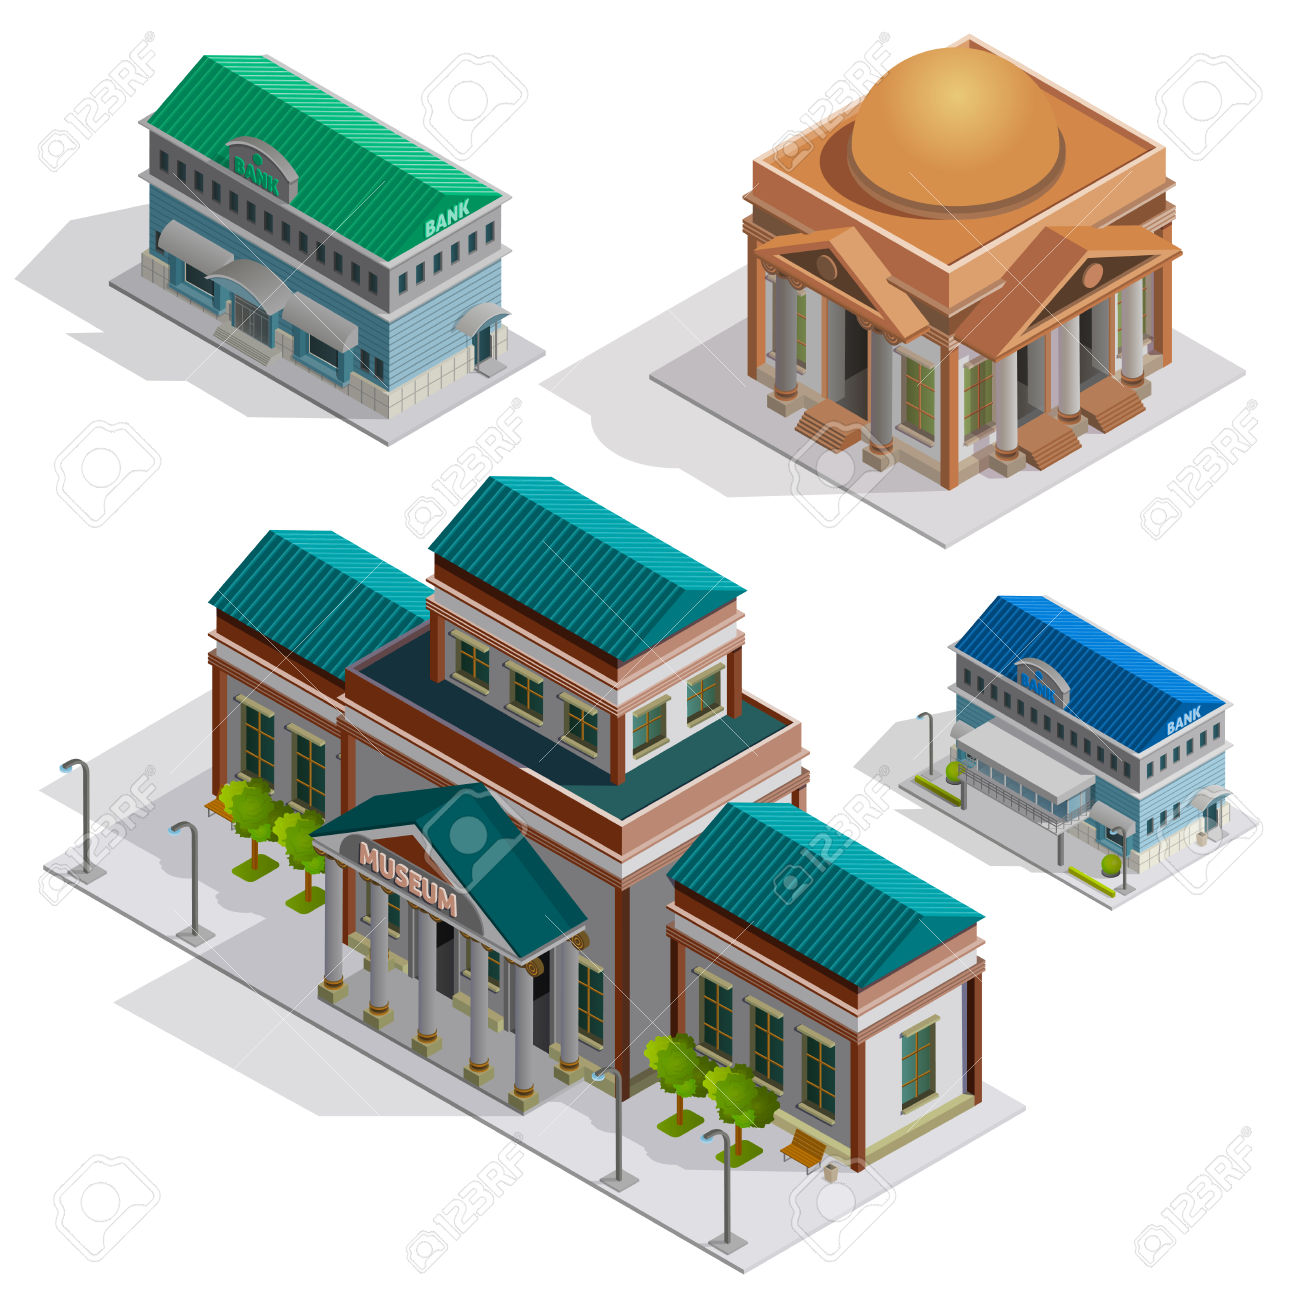 568 Public Museum Stock Vector Illustration And Royalty Free.